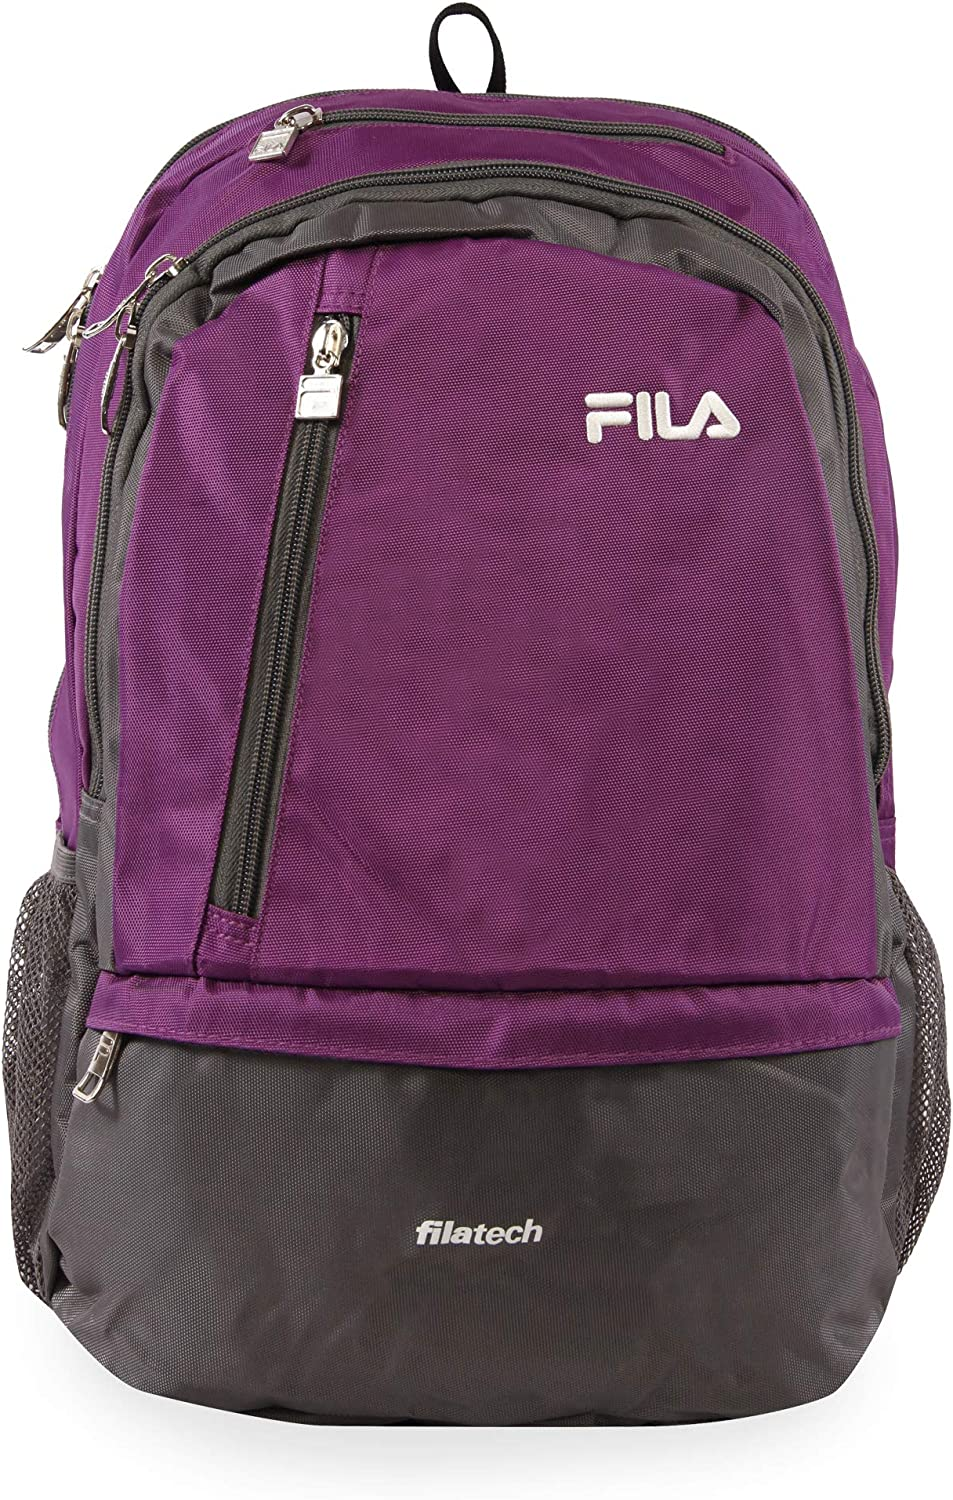 Fila Duel Tablet and Laptop Backpack, Purple, One Size